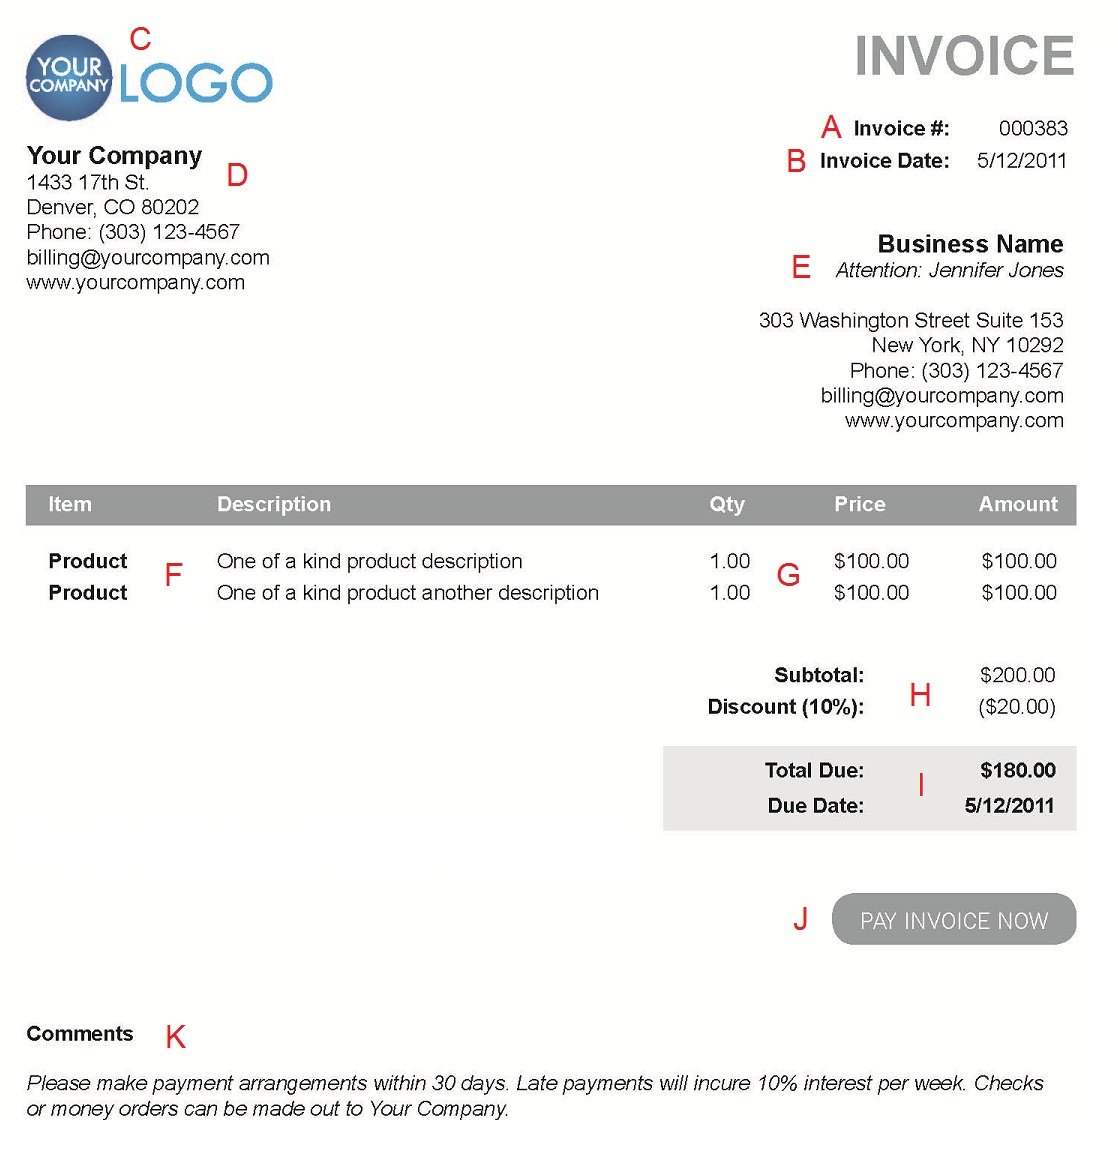 Imagerackus  Outstanding The  Different Sections Of An Electronic Payment Invoice With Marvelous A  With Captivating Certified Mail Receipt Template Also Coinstar Receipt In Addition Rent Payment Receipt Template And Official Receipt Template As Well As Via Certified Mail Return Receipt Requested Additionally Rent Receipts Templates From Paysimplecom With Imagerackus  Marvelous The  Different Sections Of An Electronic Payment Invoice With Captivating A  And Outstanding Certified Mail Receipt Template Also Coinstar Receipt In Addition Rent Payment Receipt Template From Paysimplecom